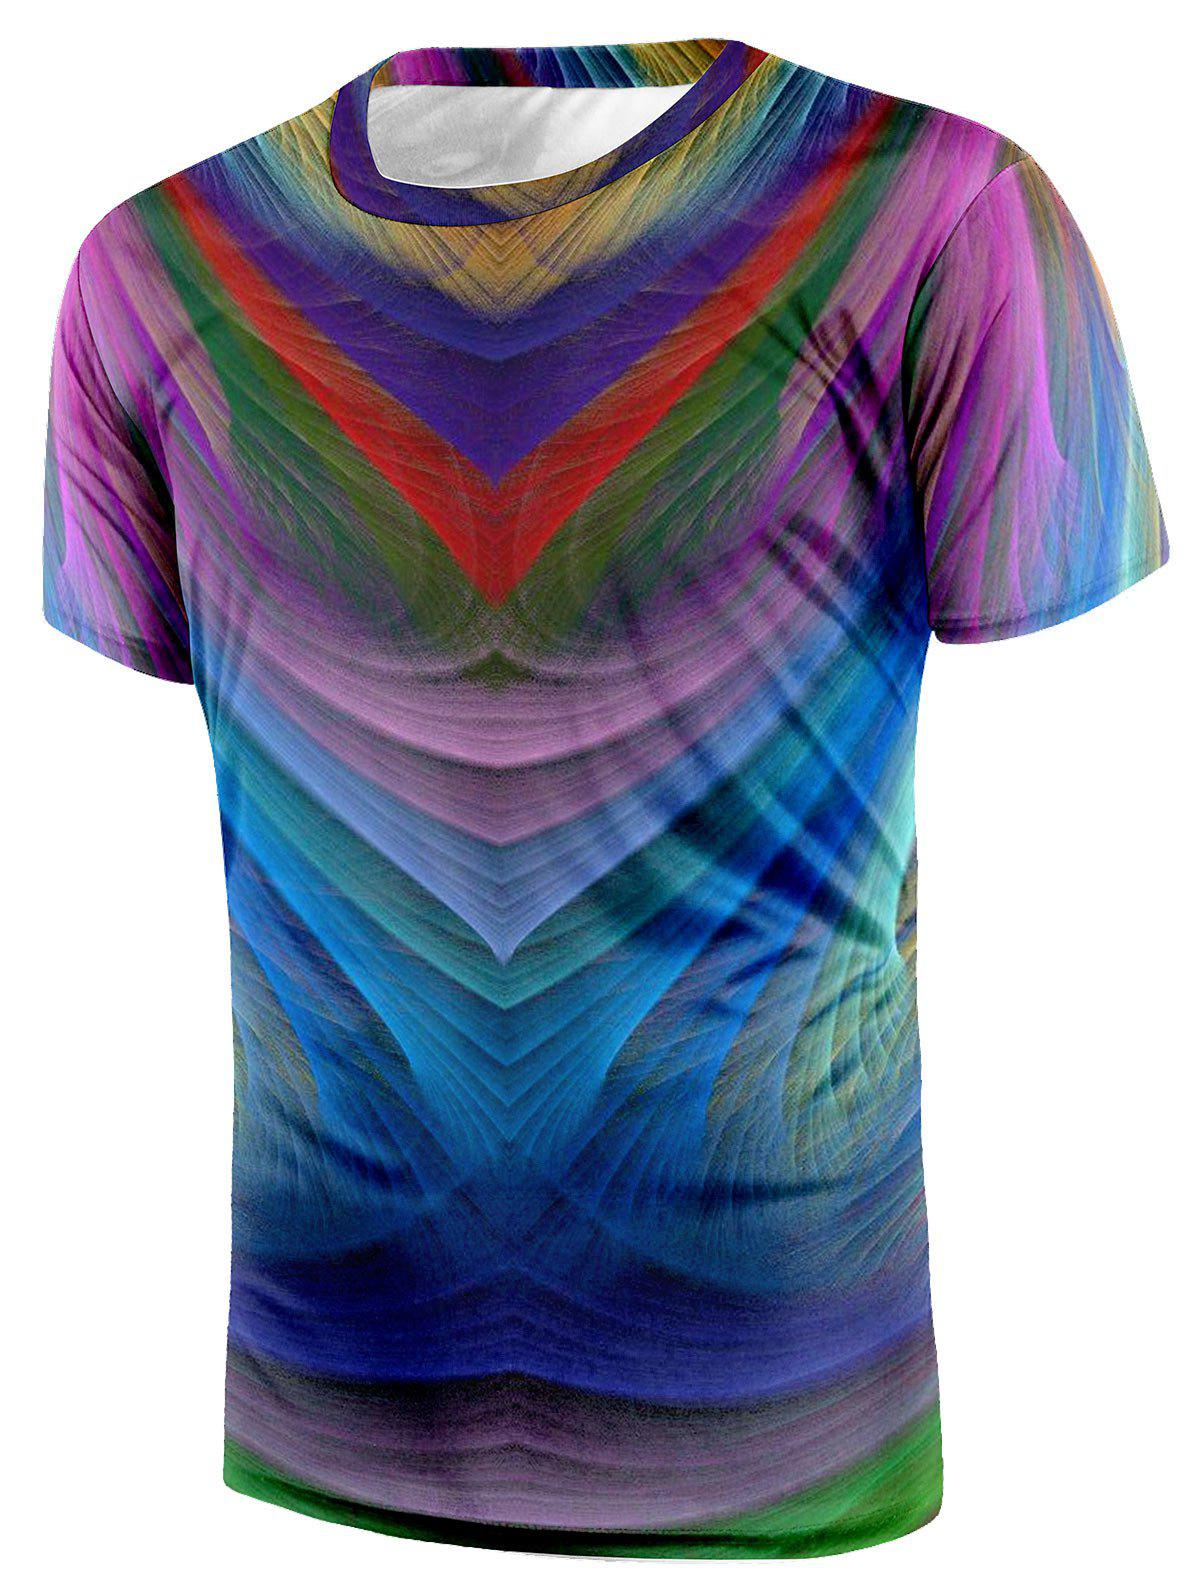 Affordable Short Sleeve Crew Neck Colorful Tee